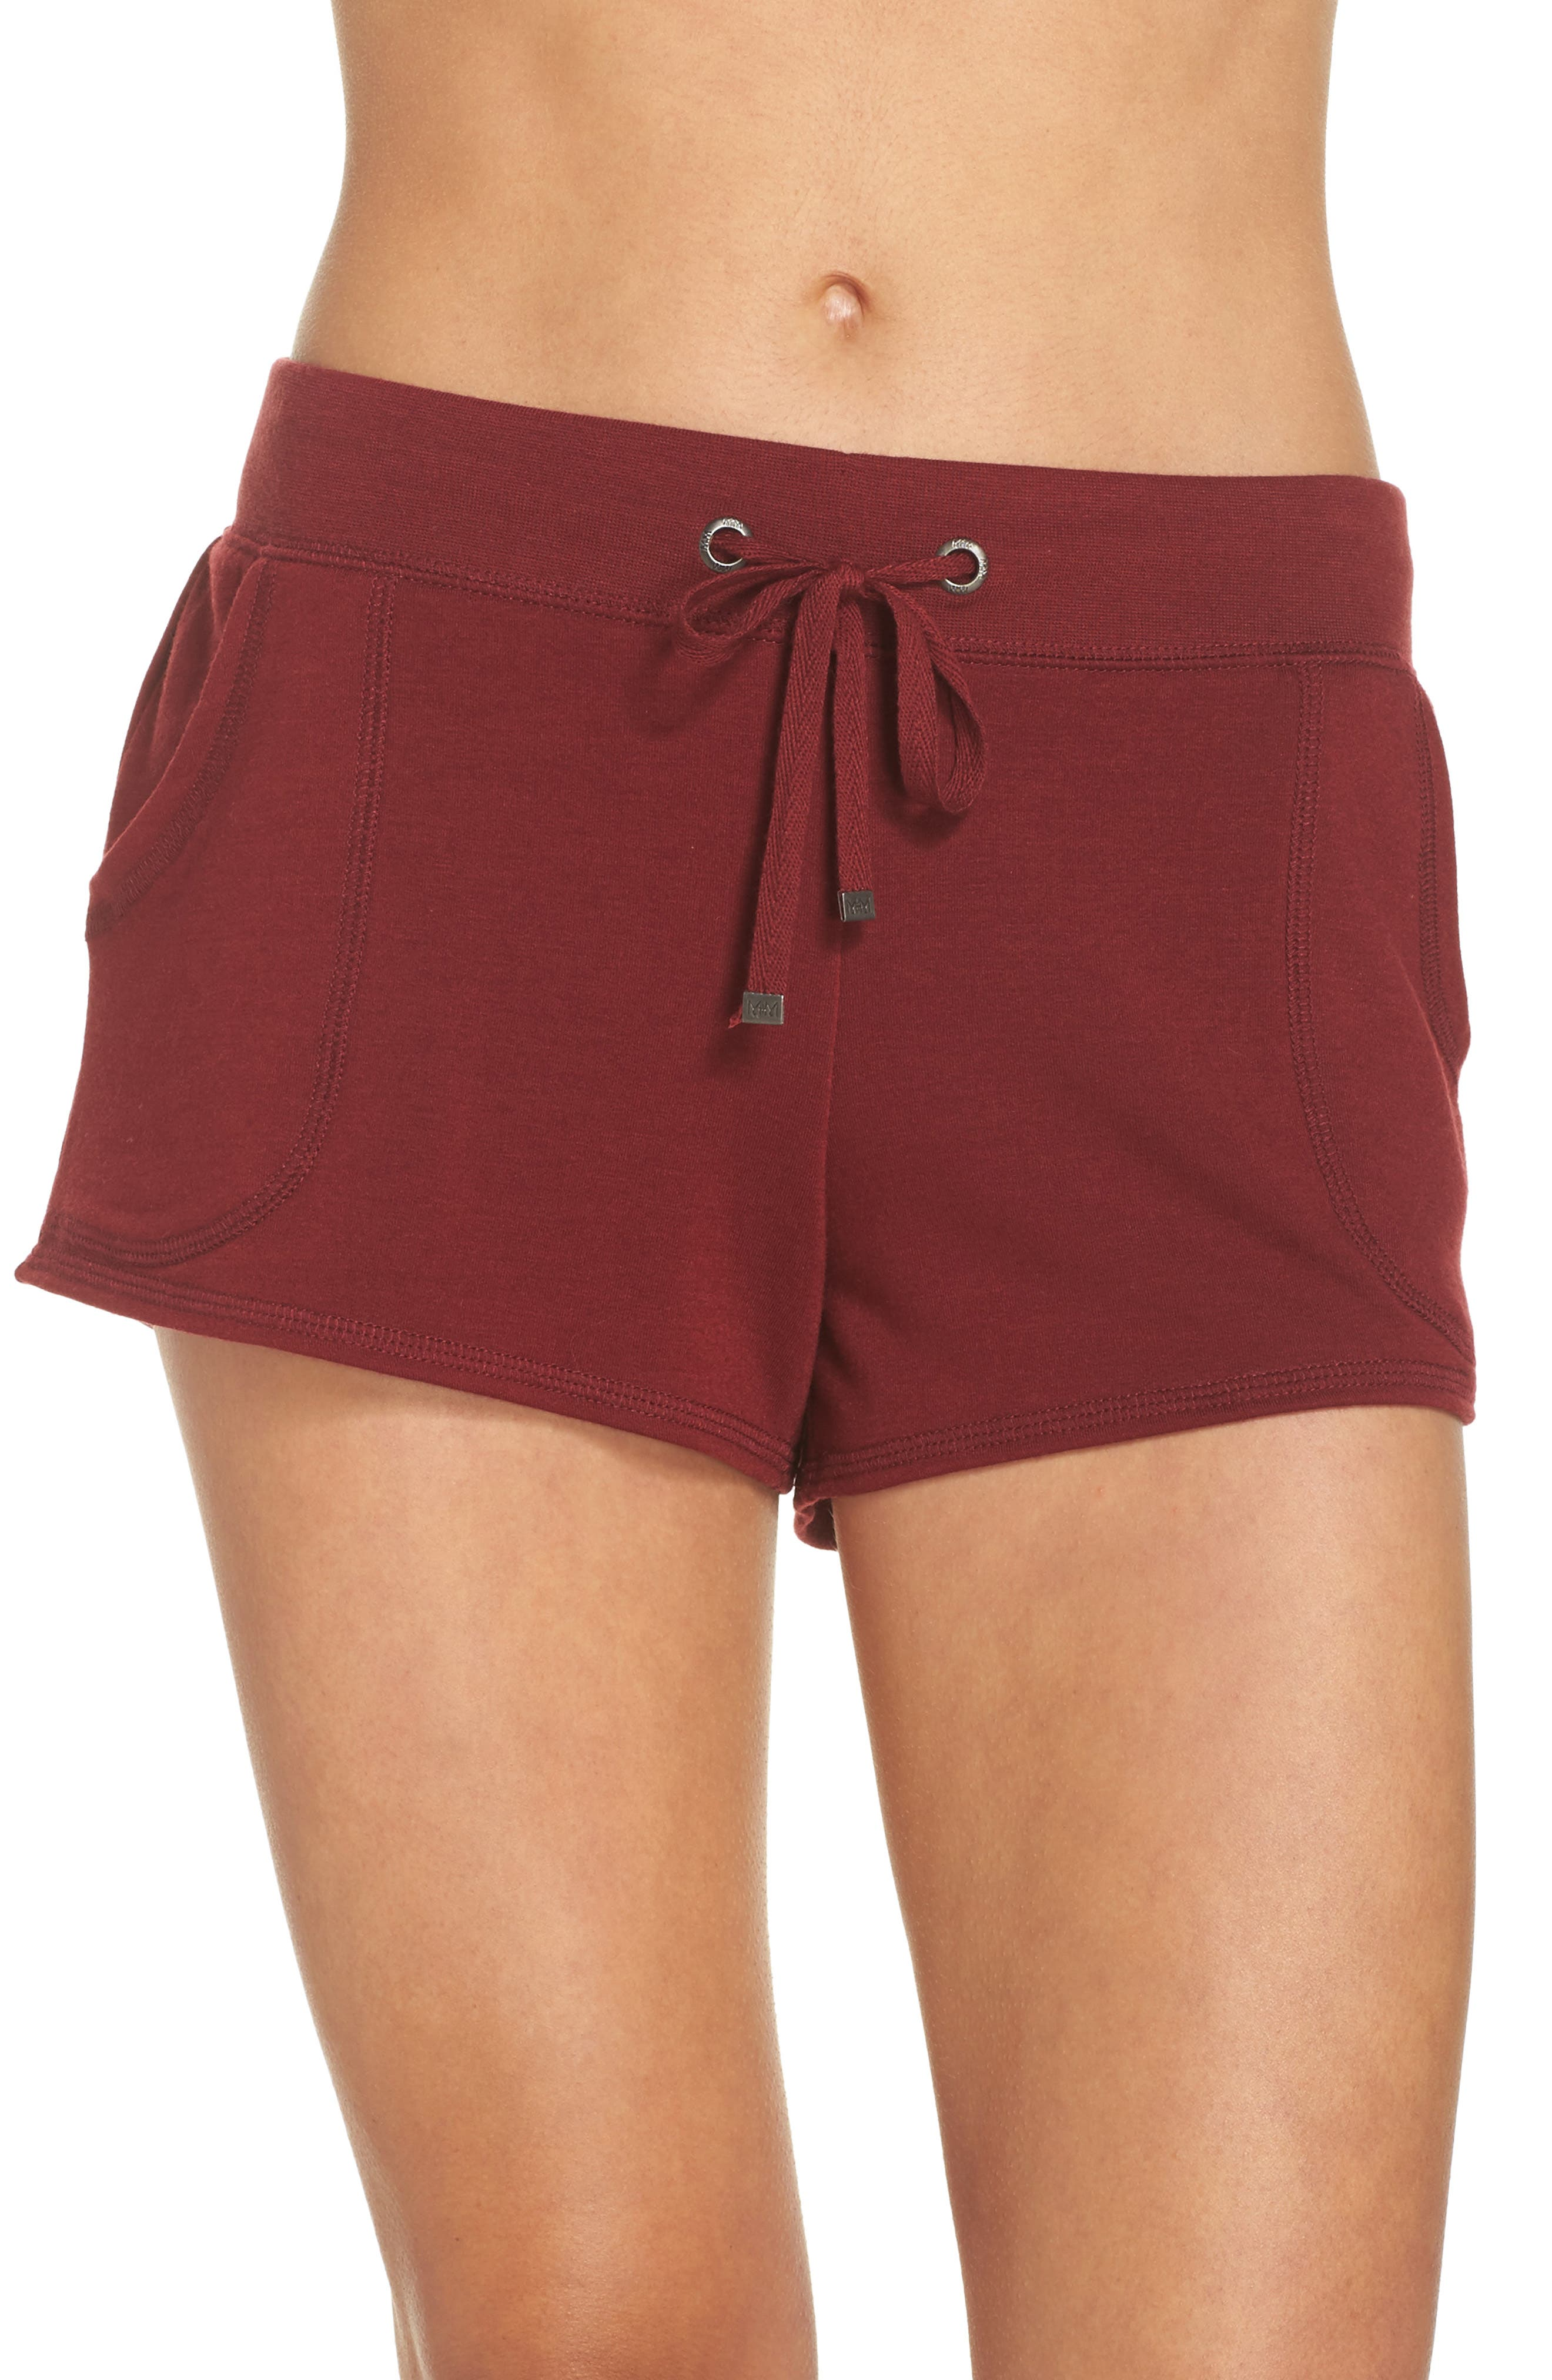 Down To The Details Lounge Shorts,                         Main,                         color, Red Grape